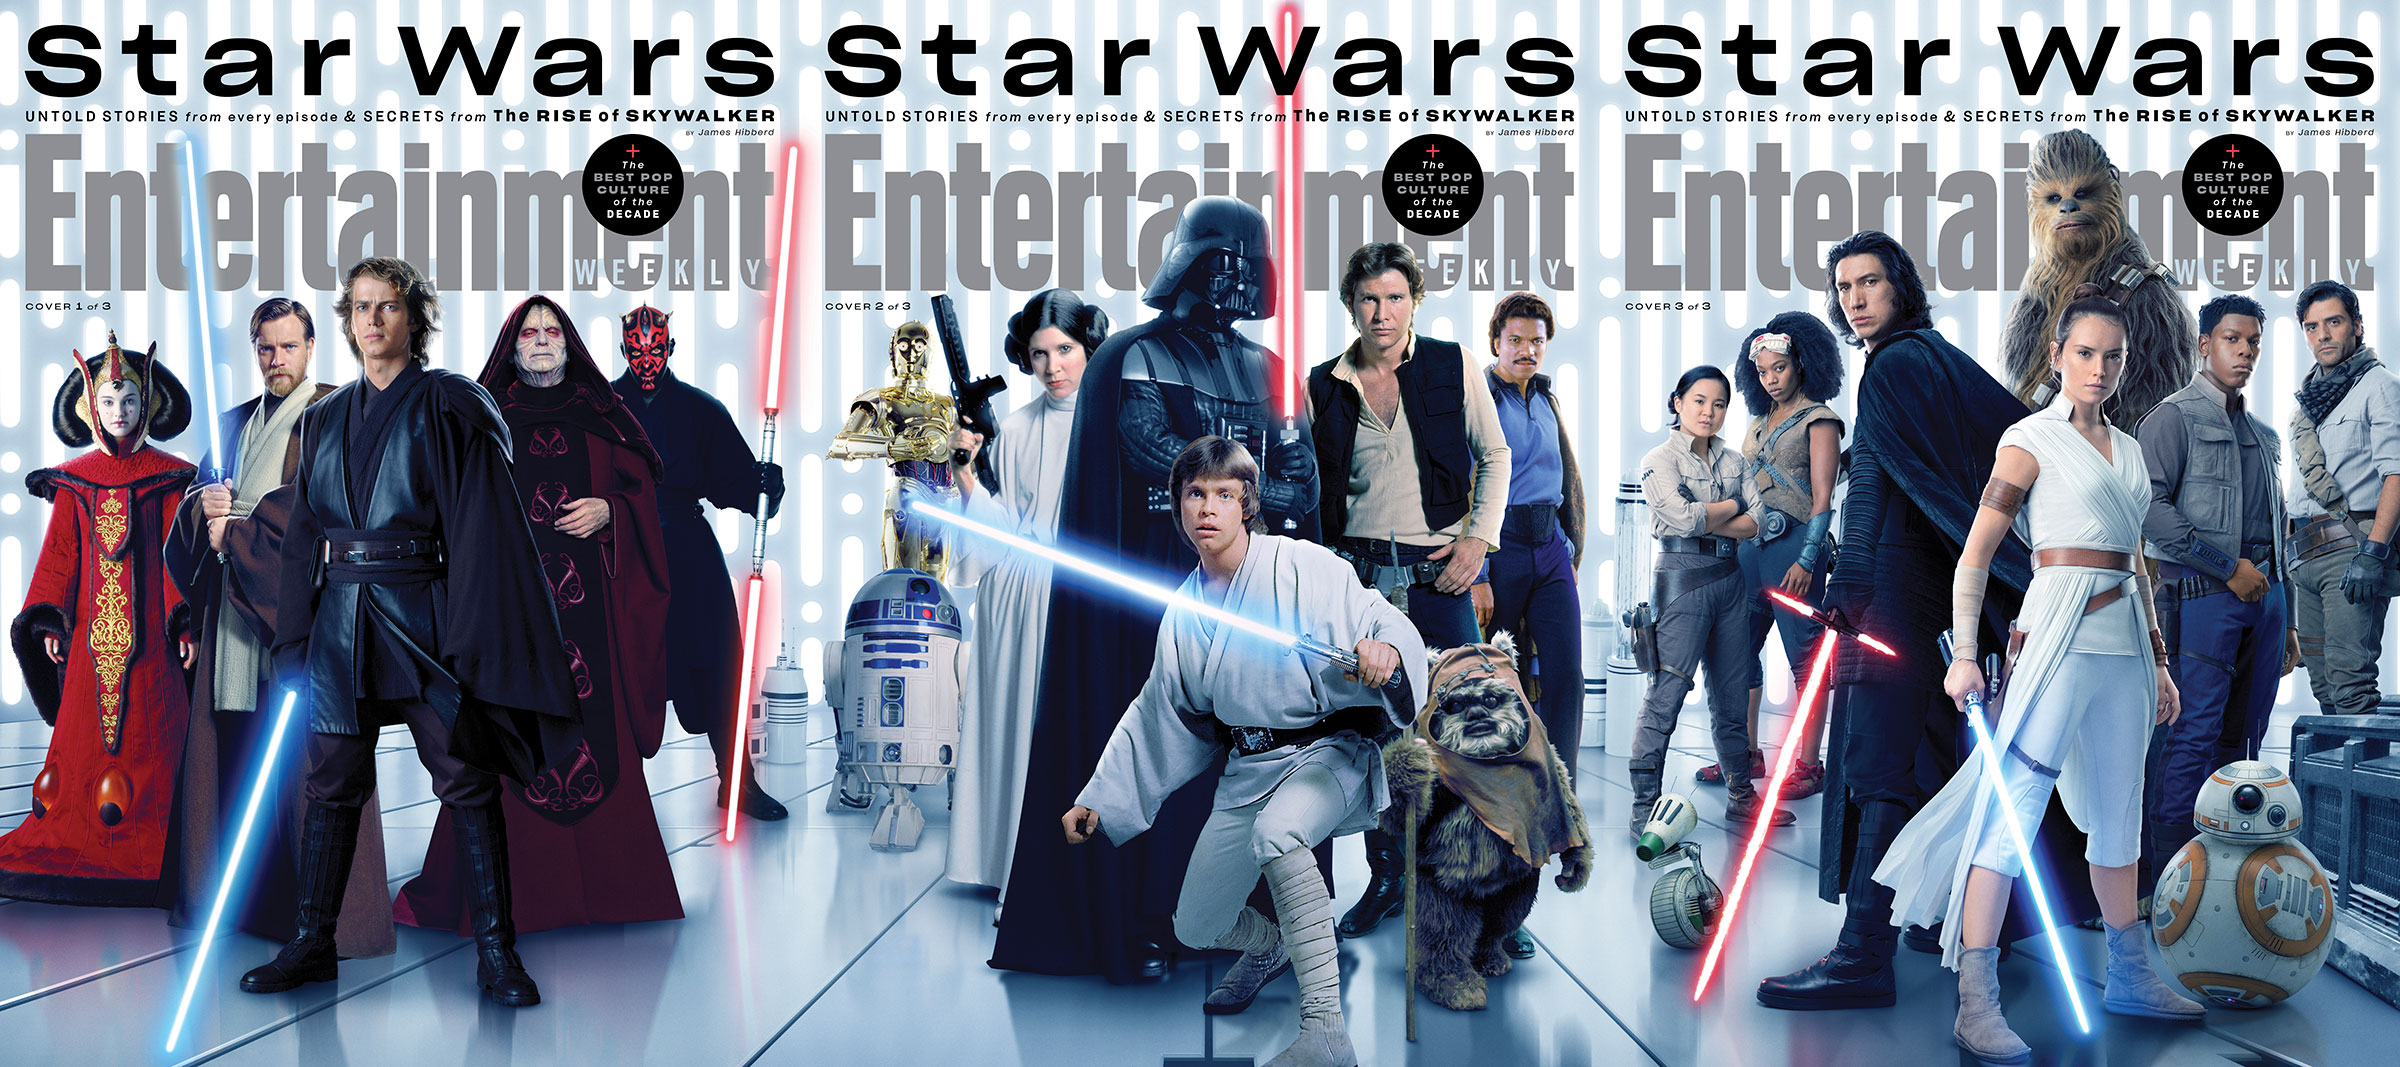 Star Wars Collectible Covers From Entertainment Weekly